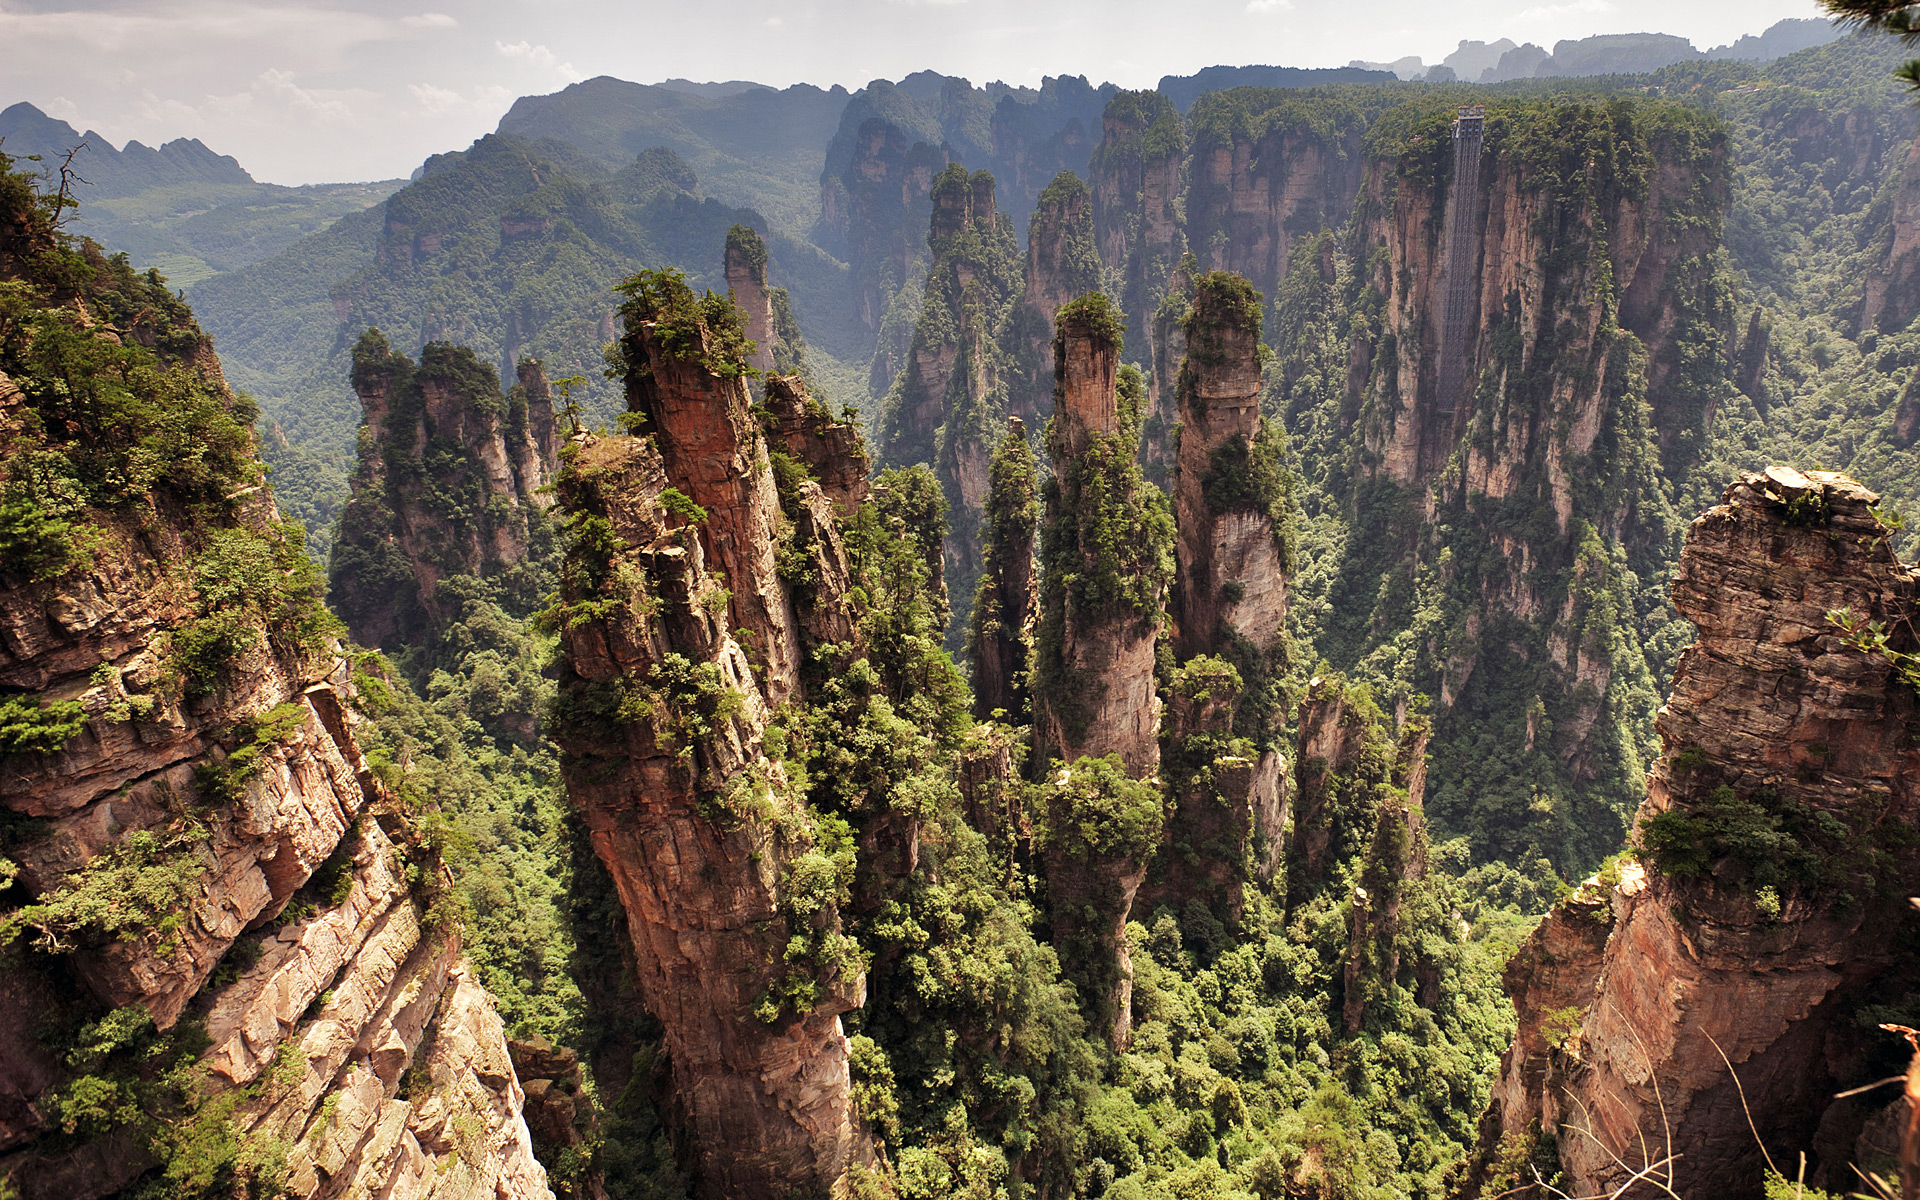 Natural Forest Park of Zhangjiaje, China